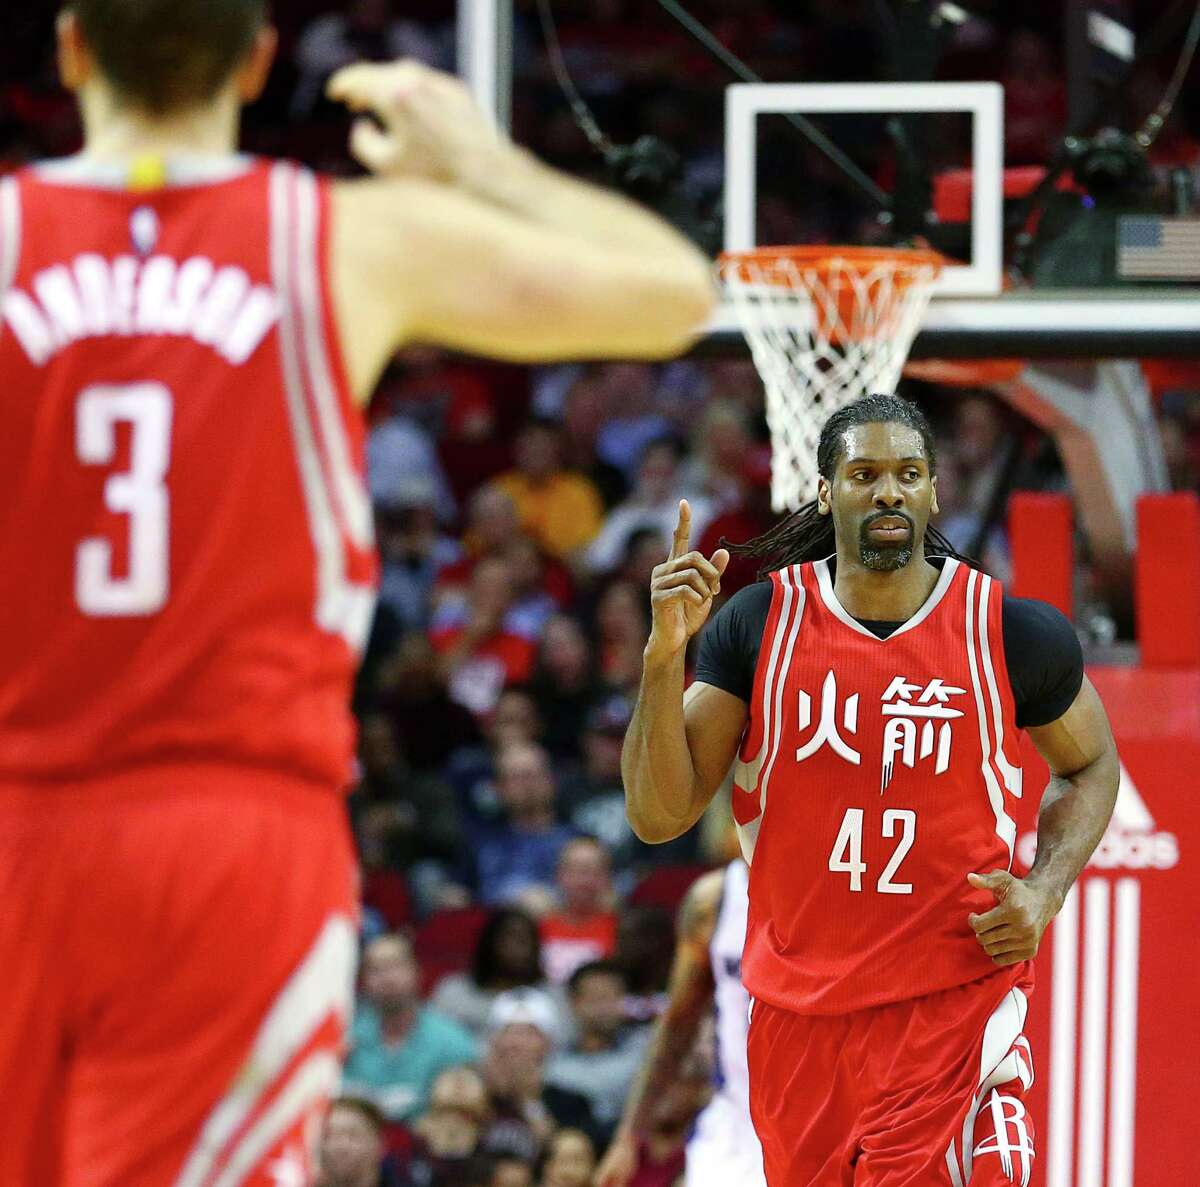 Houston Rockets center Nene Hilario (42) celebrates after scoring during the second quarter of an NBA game at the Toyota Center, Tuesday, Jan. 31, 2017, in Houston.